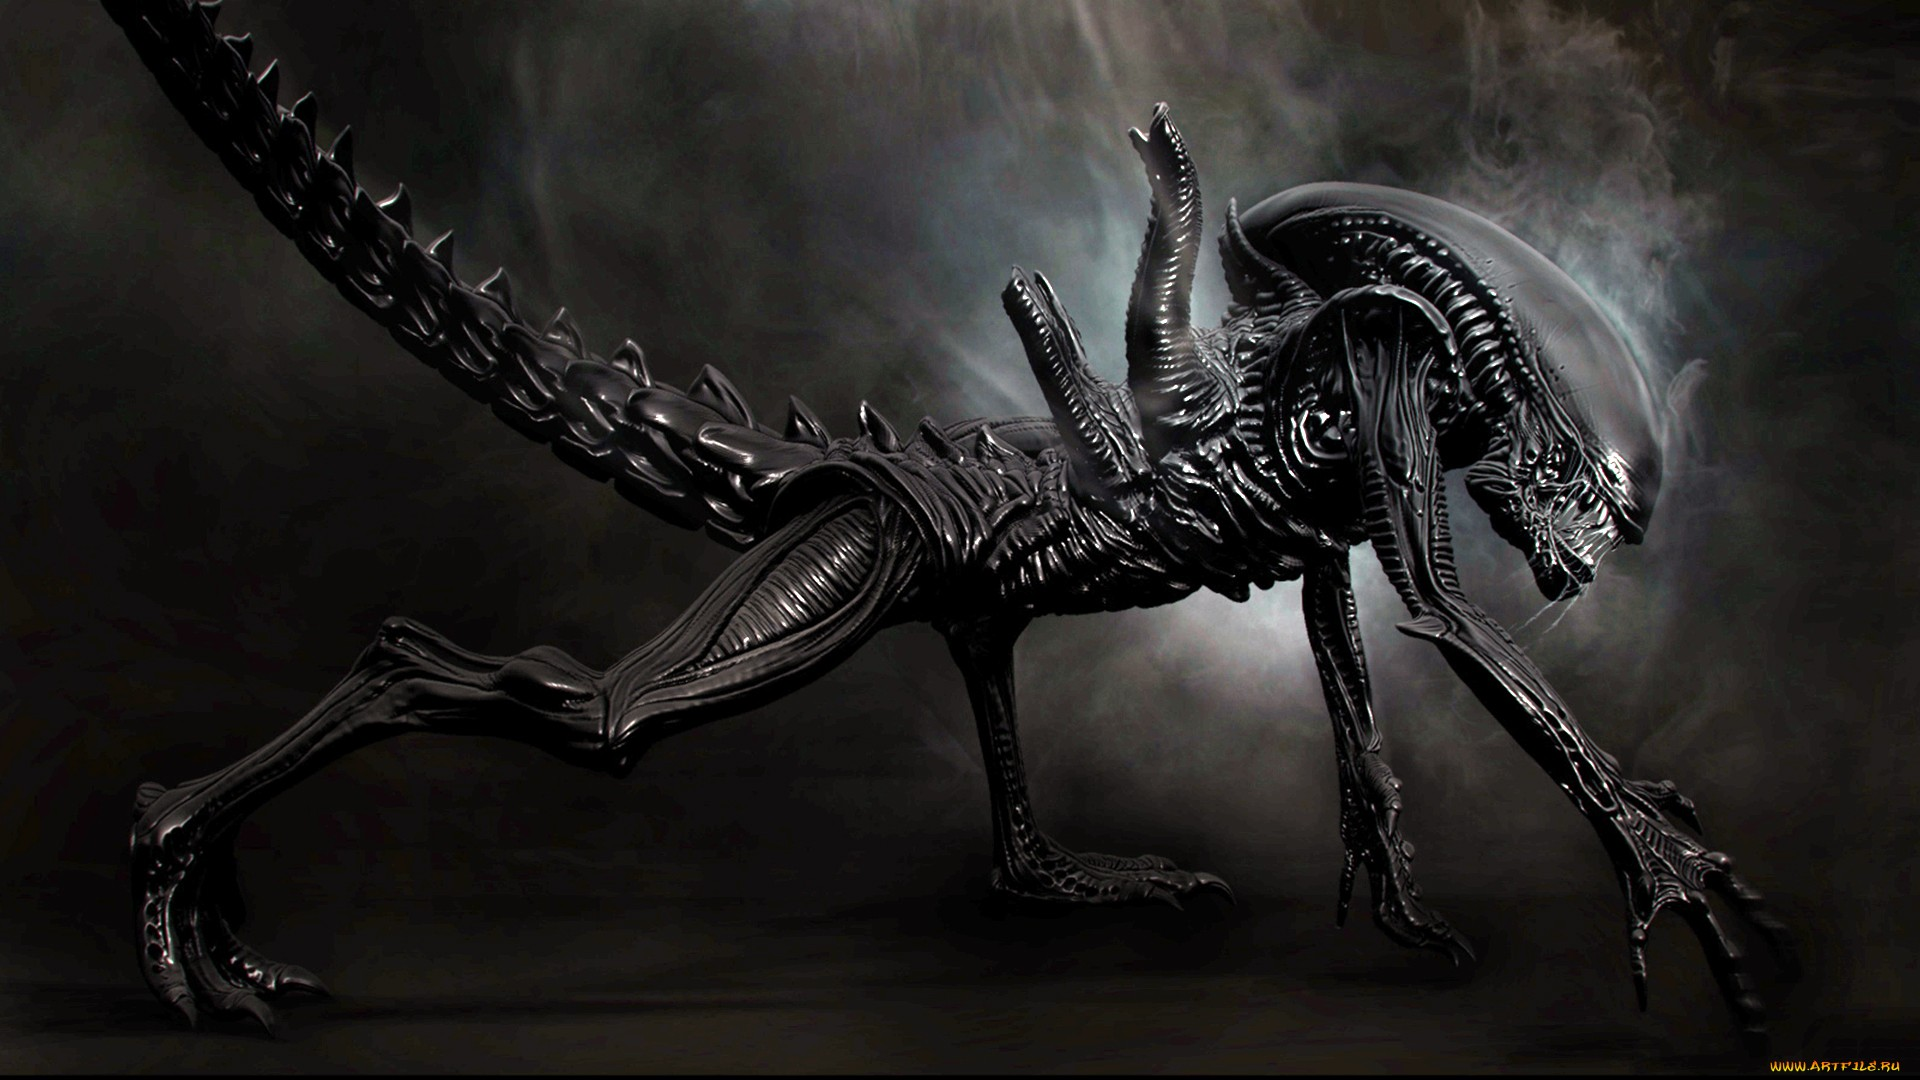 Alien Computer Wallpapers Desktop Backgrounds 1920x1080 ID393642 1920x1080